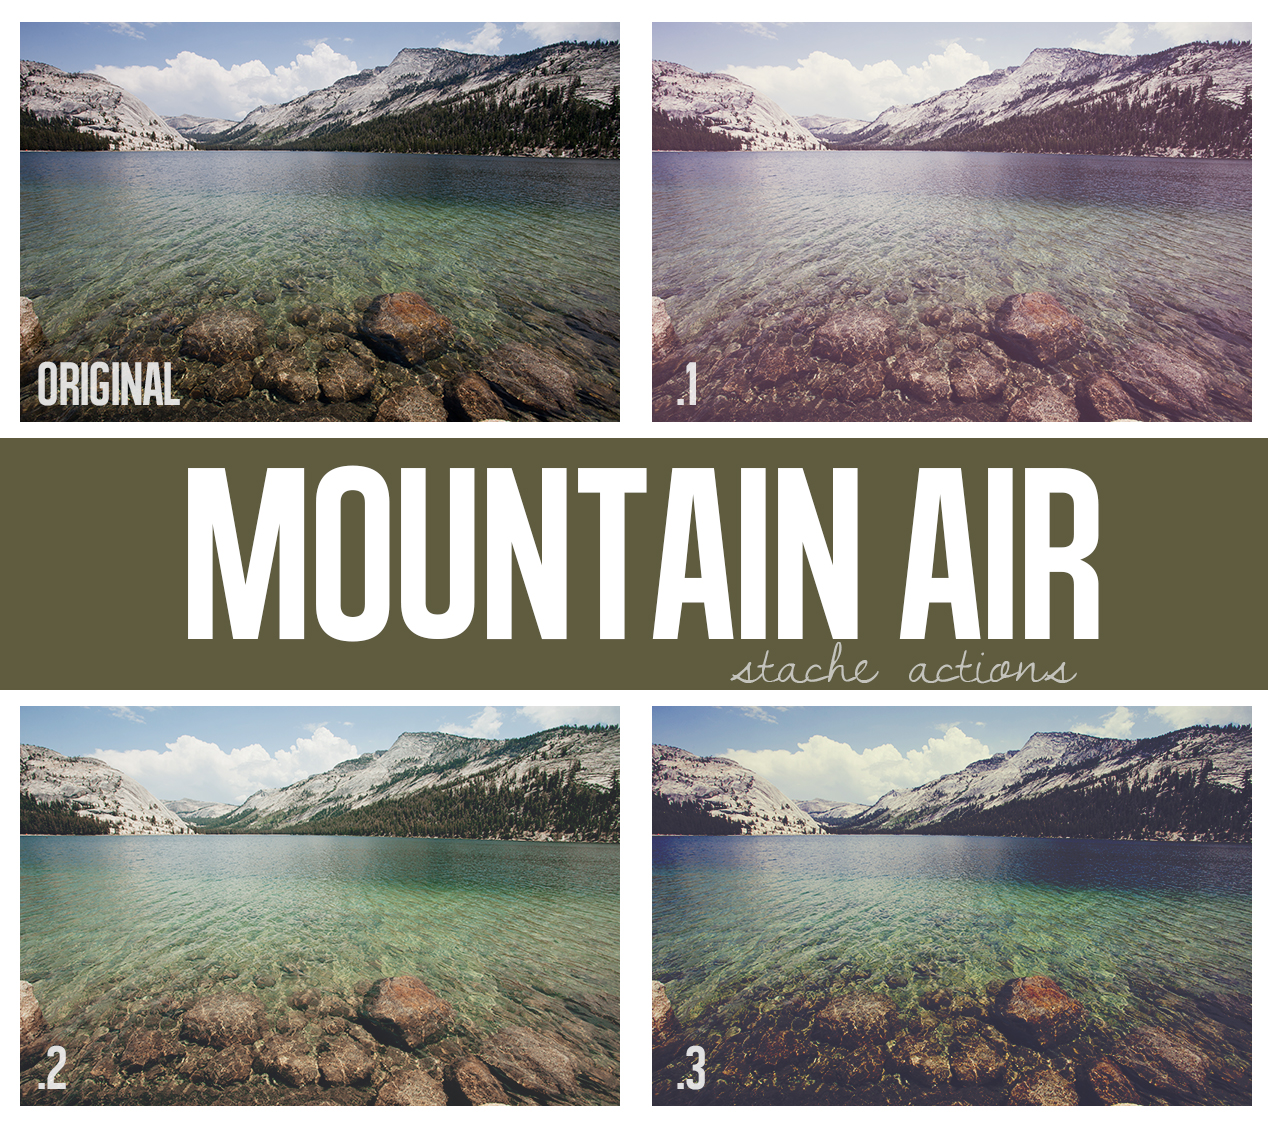 Mountain air by stacheactions on deviantart for Mountain aire